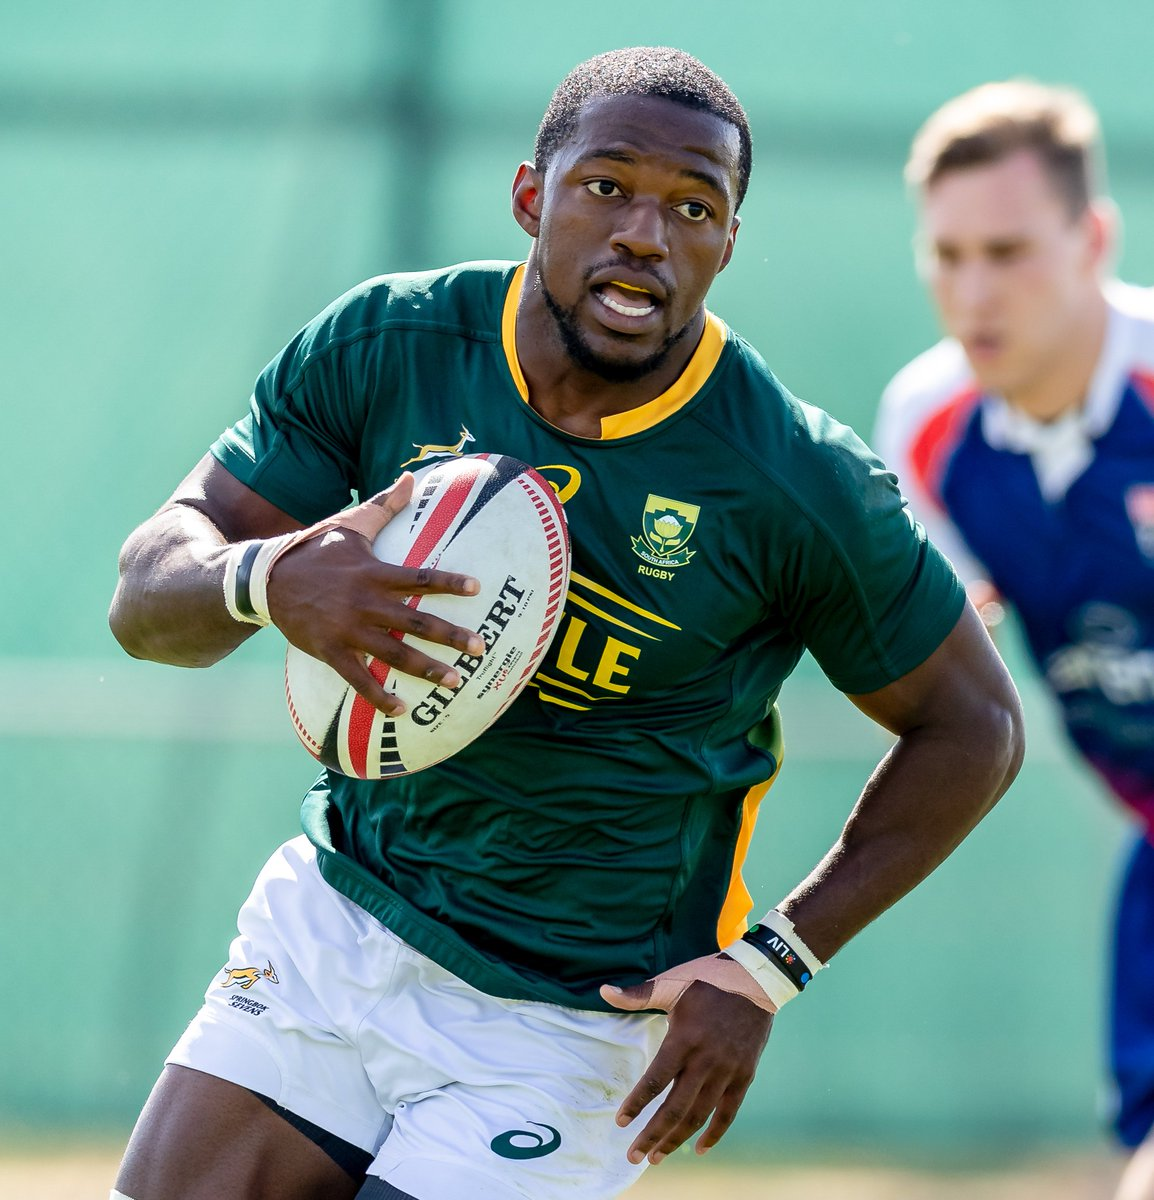 Ndhlovu included in Blitzboks lineup for Canada Sevens - Sports Leo